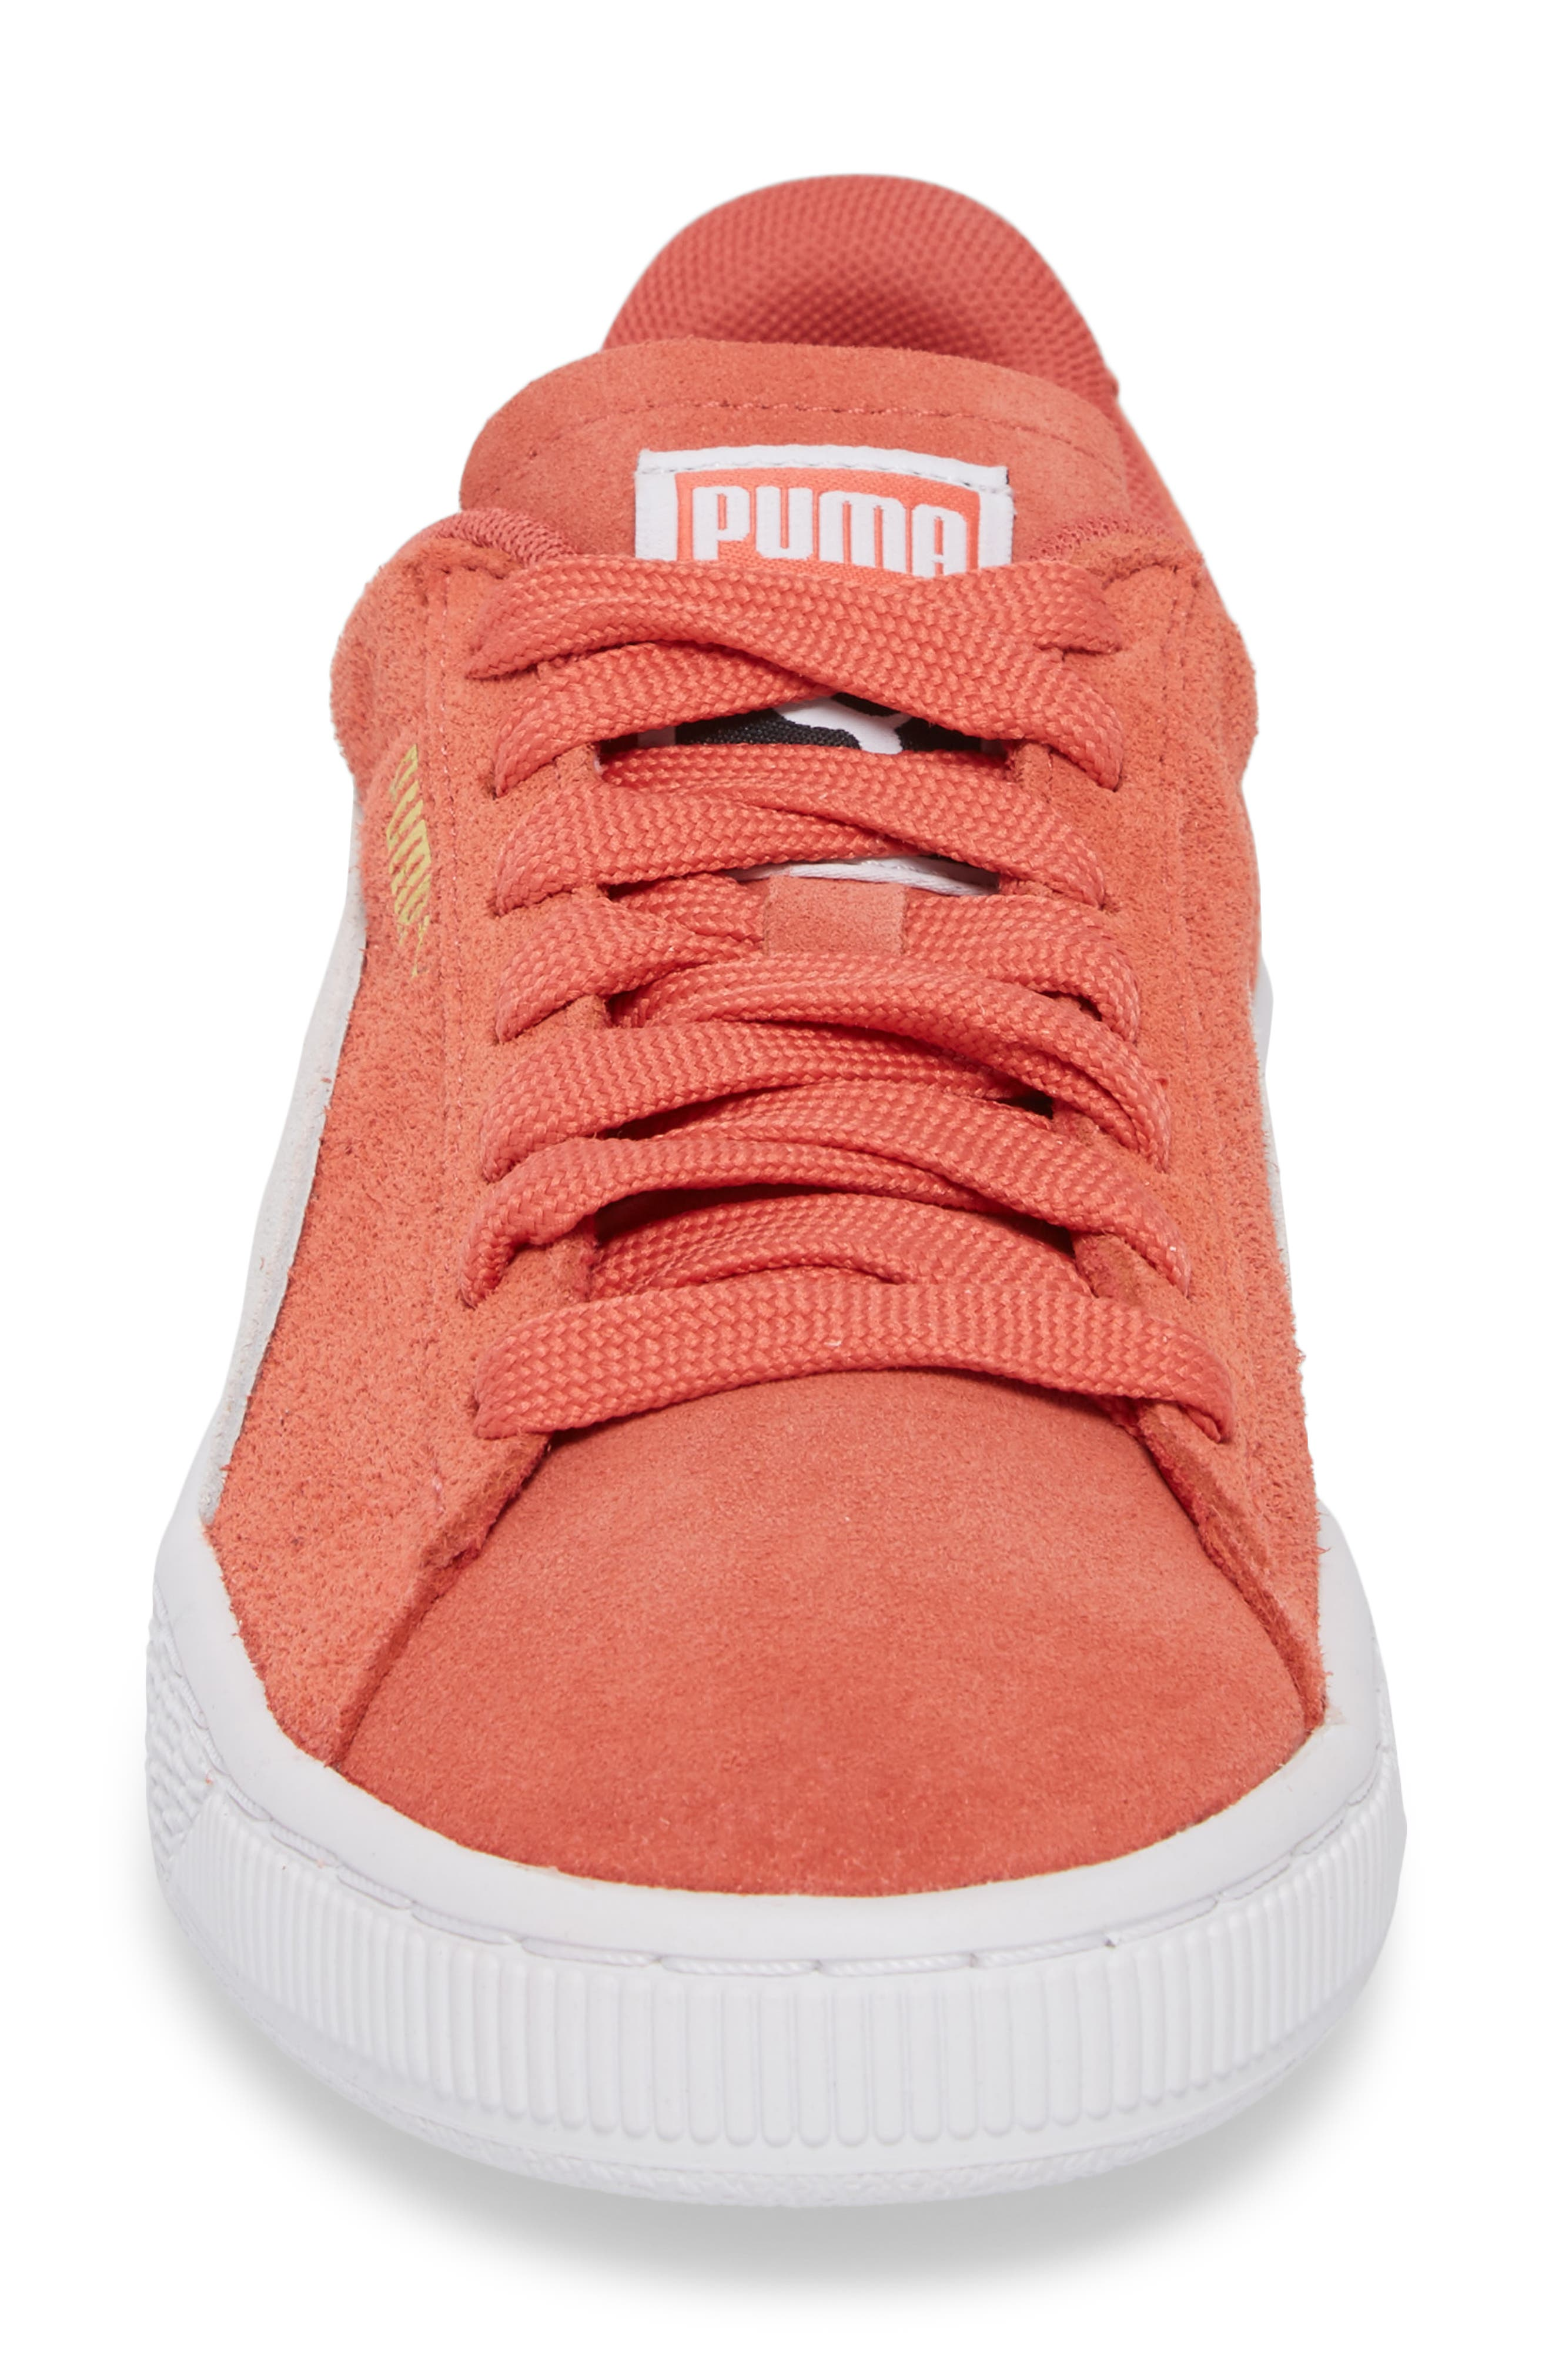 Suede Sneaker,                             Alternate thumbnail 3, color,                             Spiced Coral/ Puma White